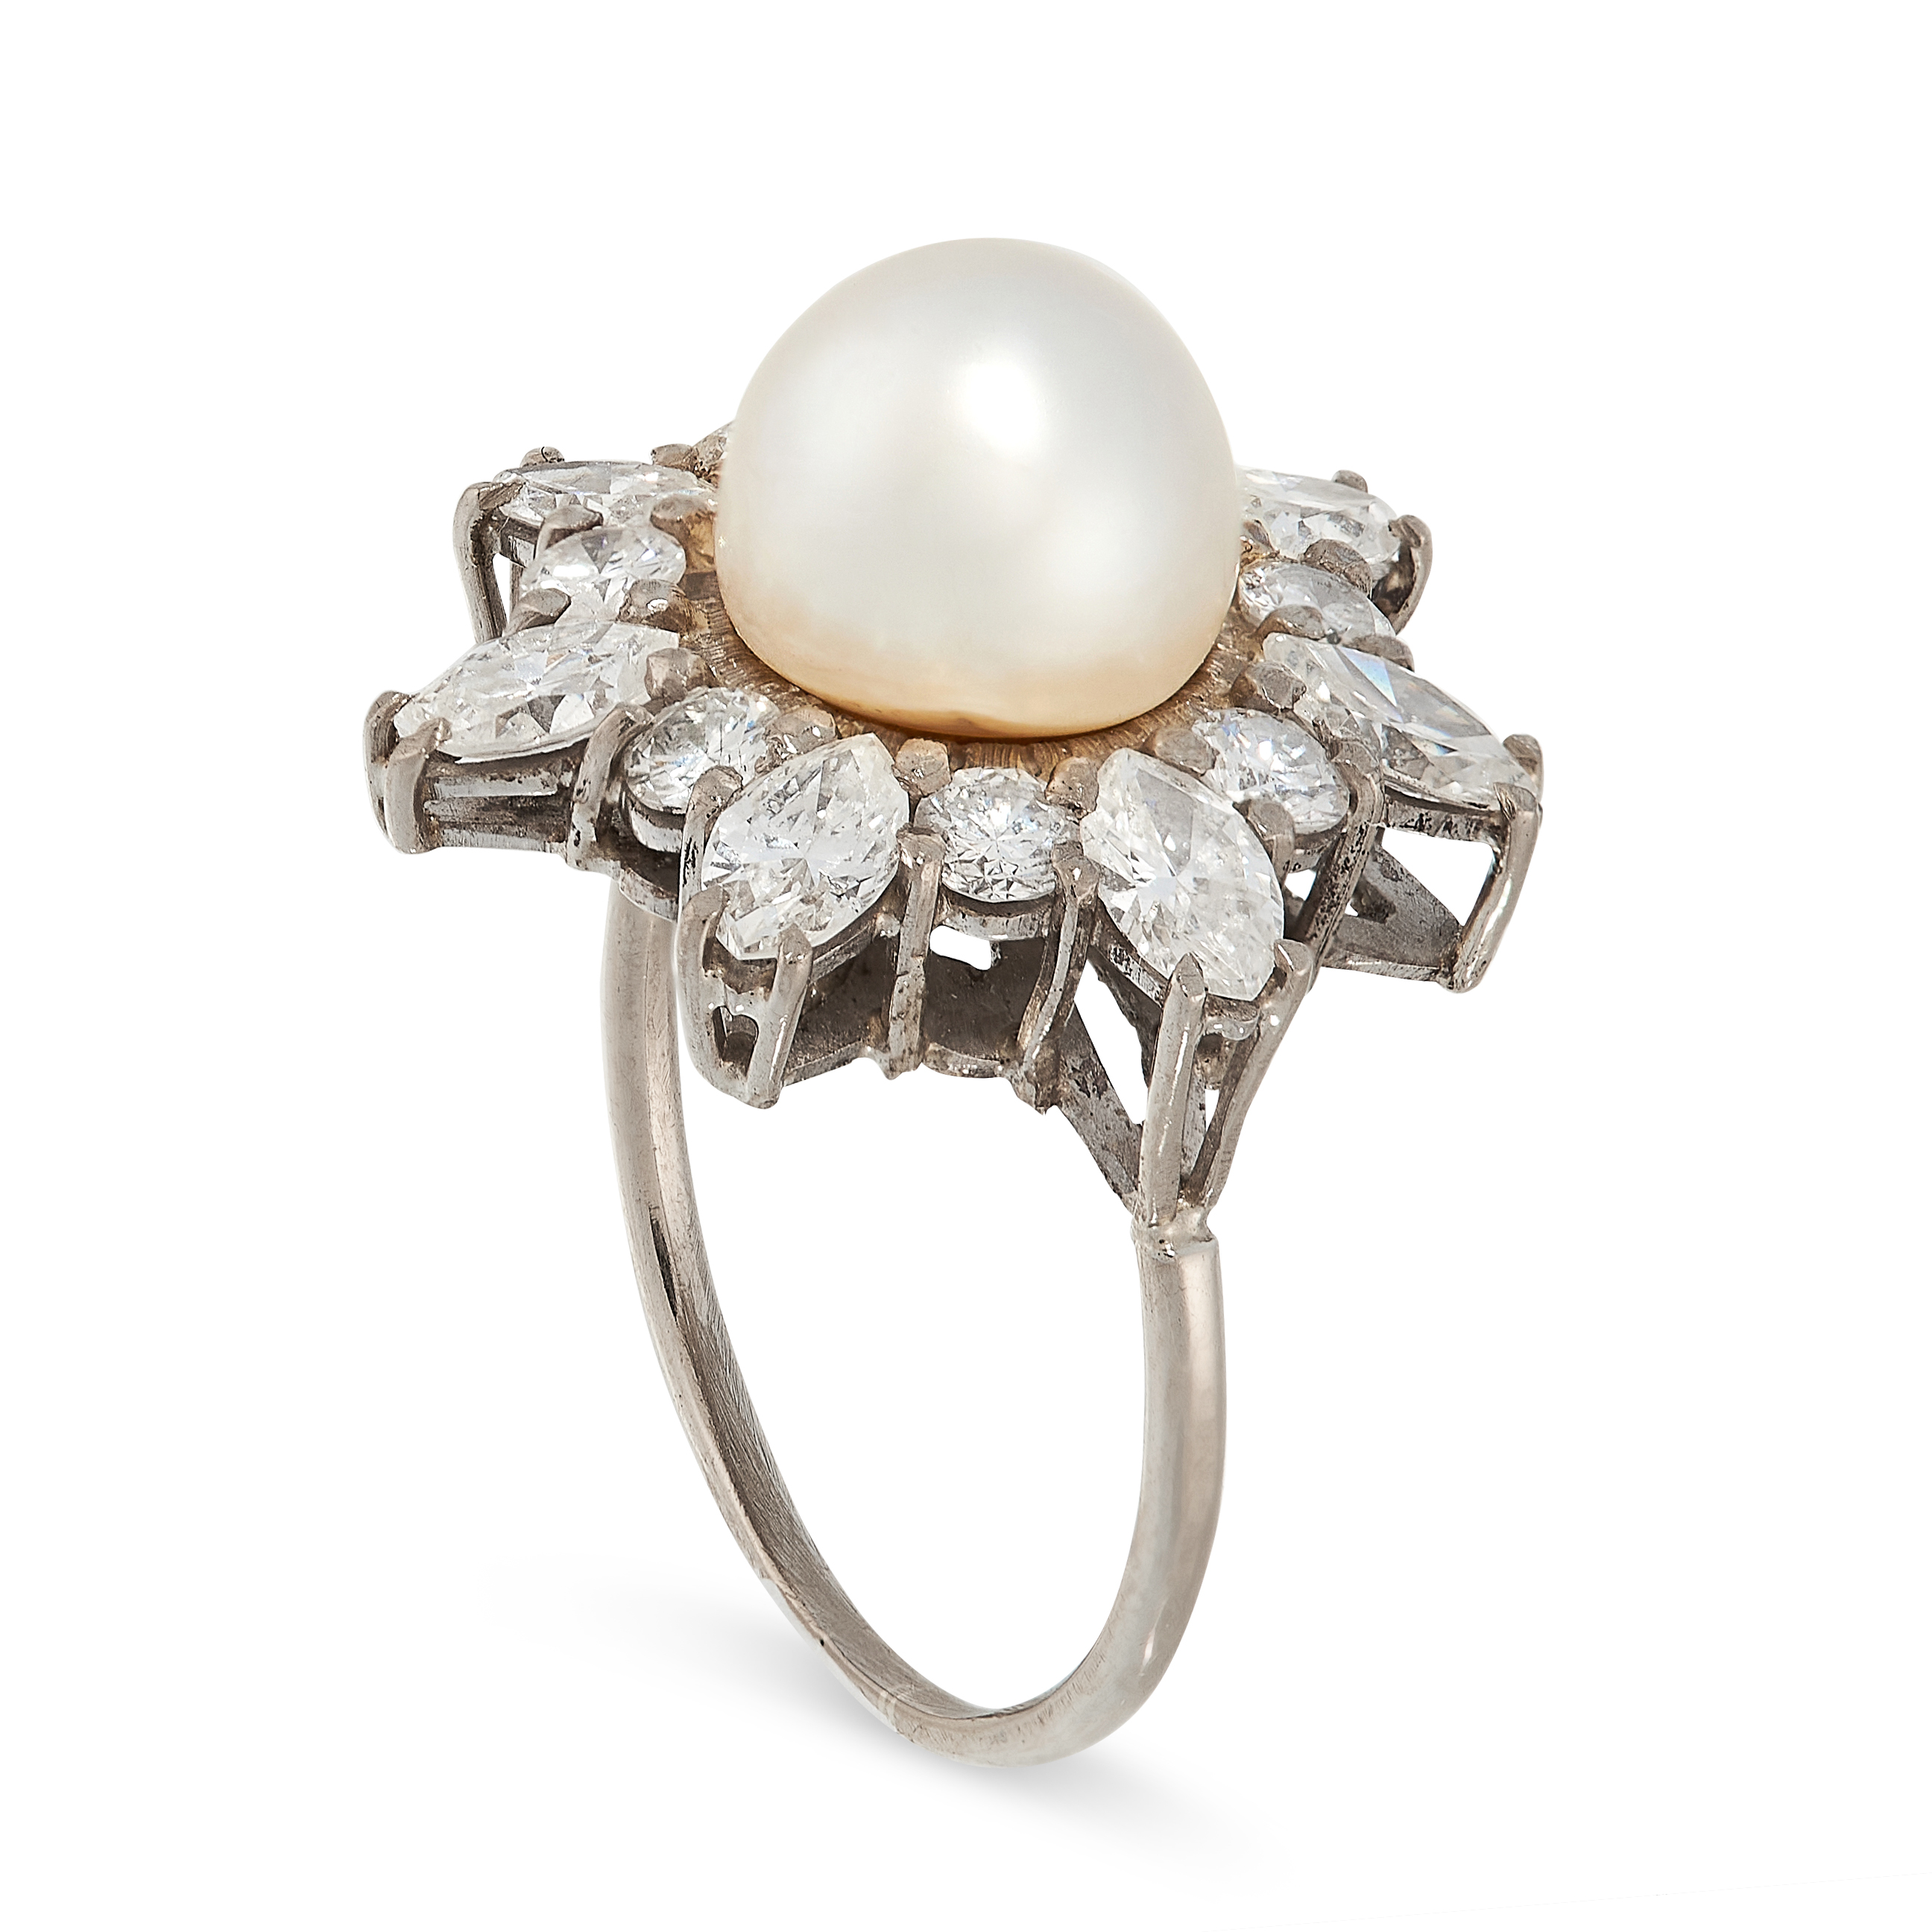 VINTAGE PEARL AND DIAMOND RING in cluster form, set with a pearl of 8.3mm in a border of round and - Image 2 of 2